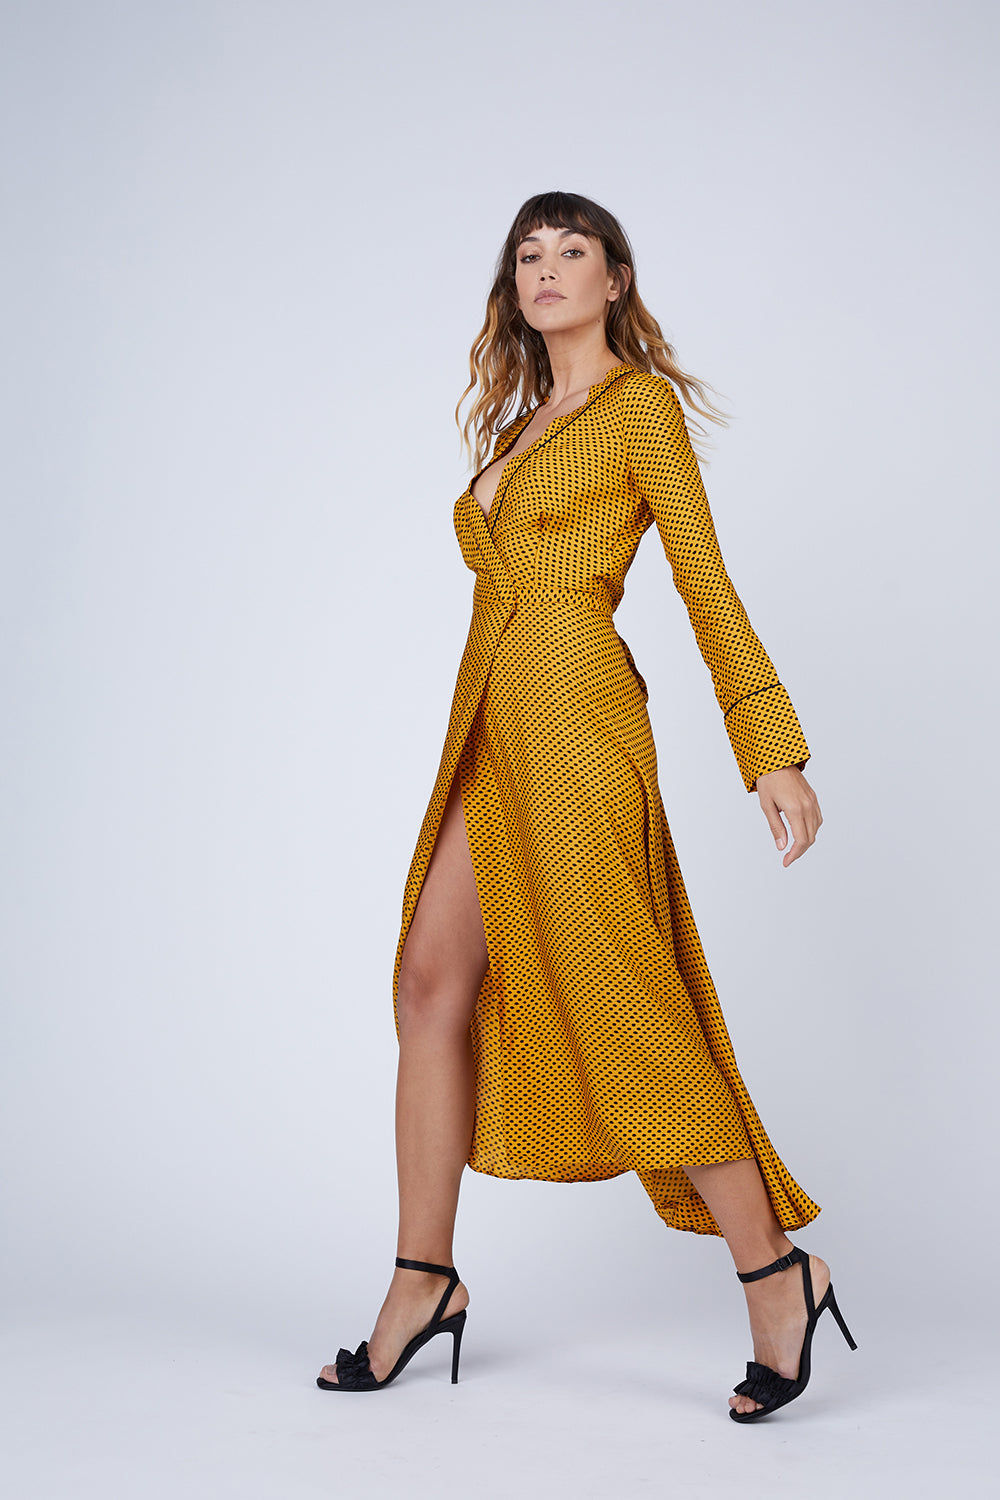 BEC & BRIDGE Sun Valley Midi Dress - Spot Print Dress | Spot Print| Bec & Bridge Sun Valley Midi Dress - Spot Print. Features:  Wrap dress with matching tie at waist Midi length Relaxed fit 100% Viscose Made in Australia Front View